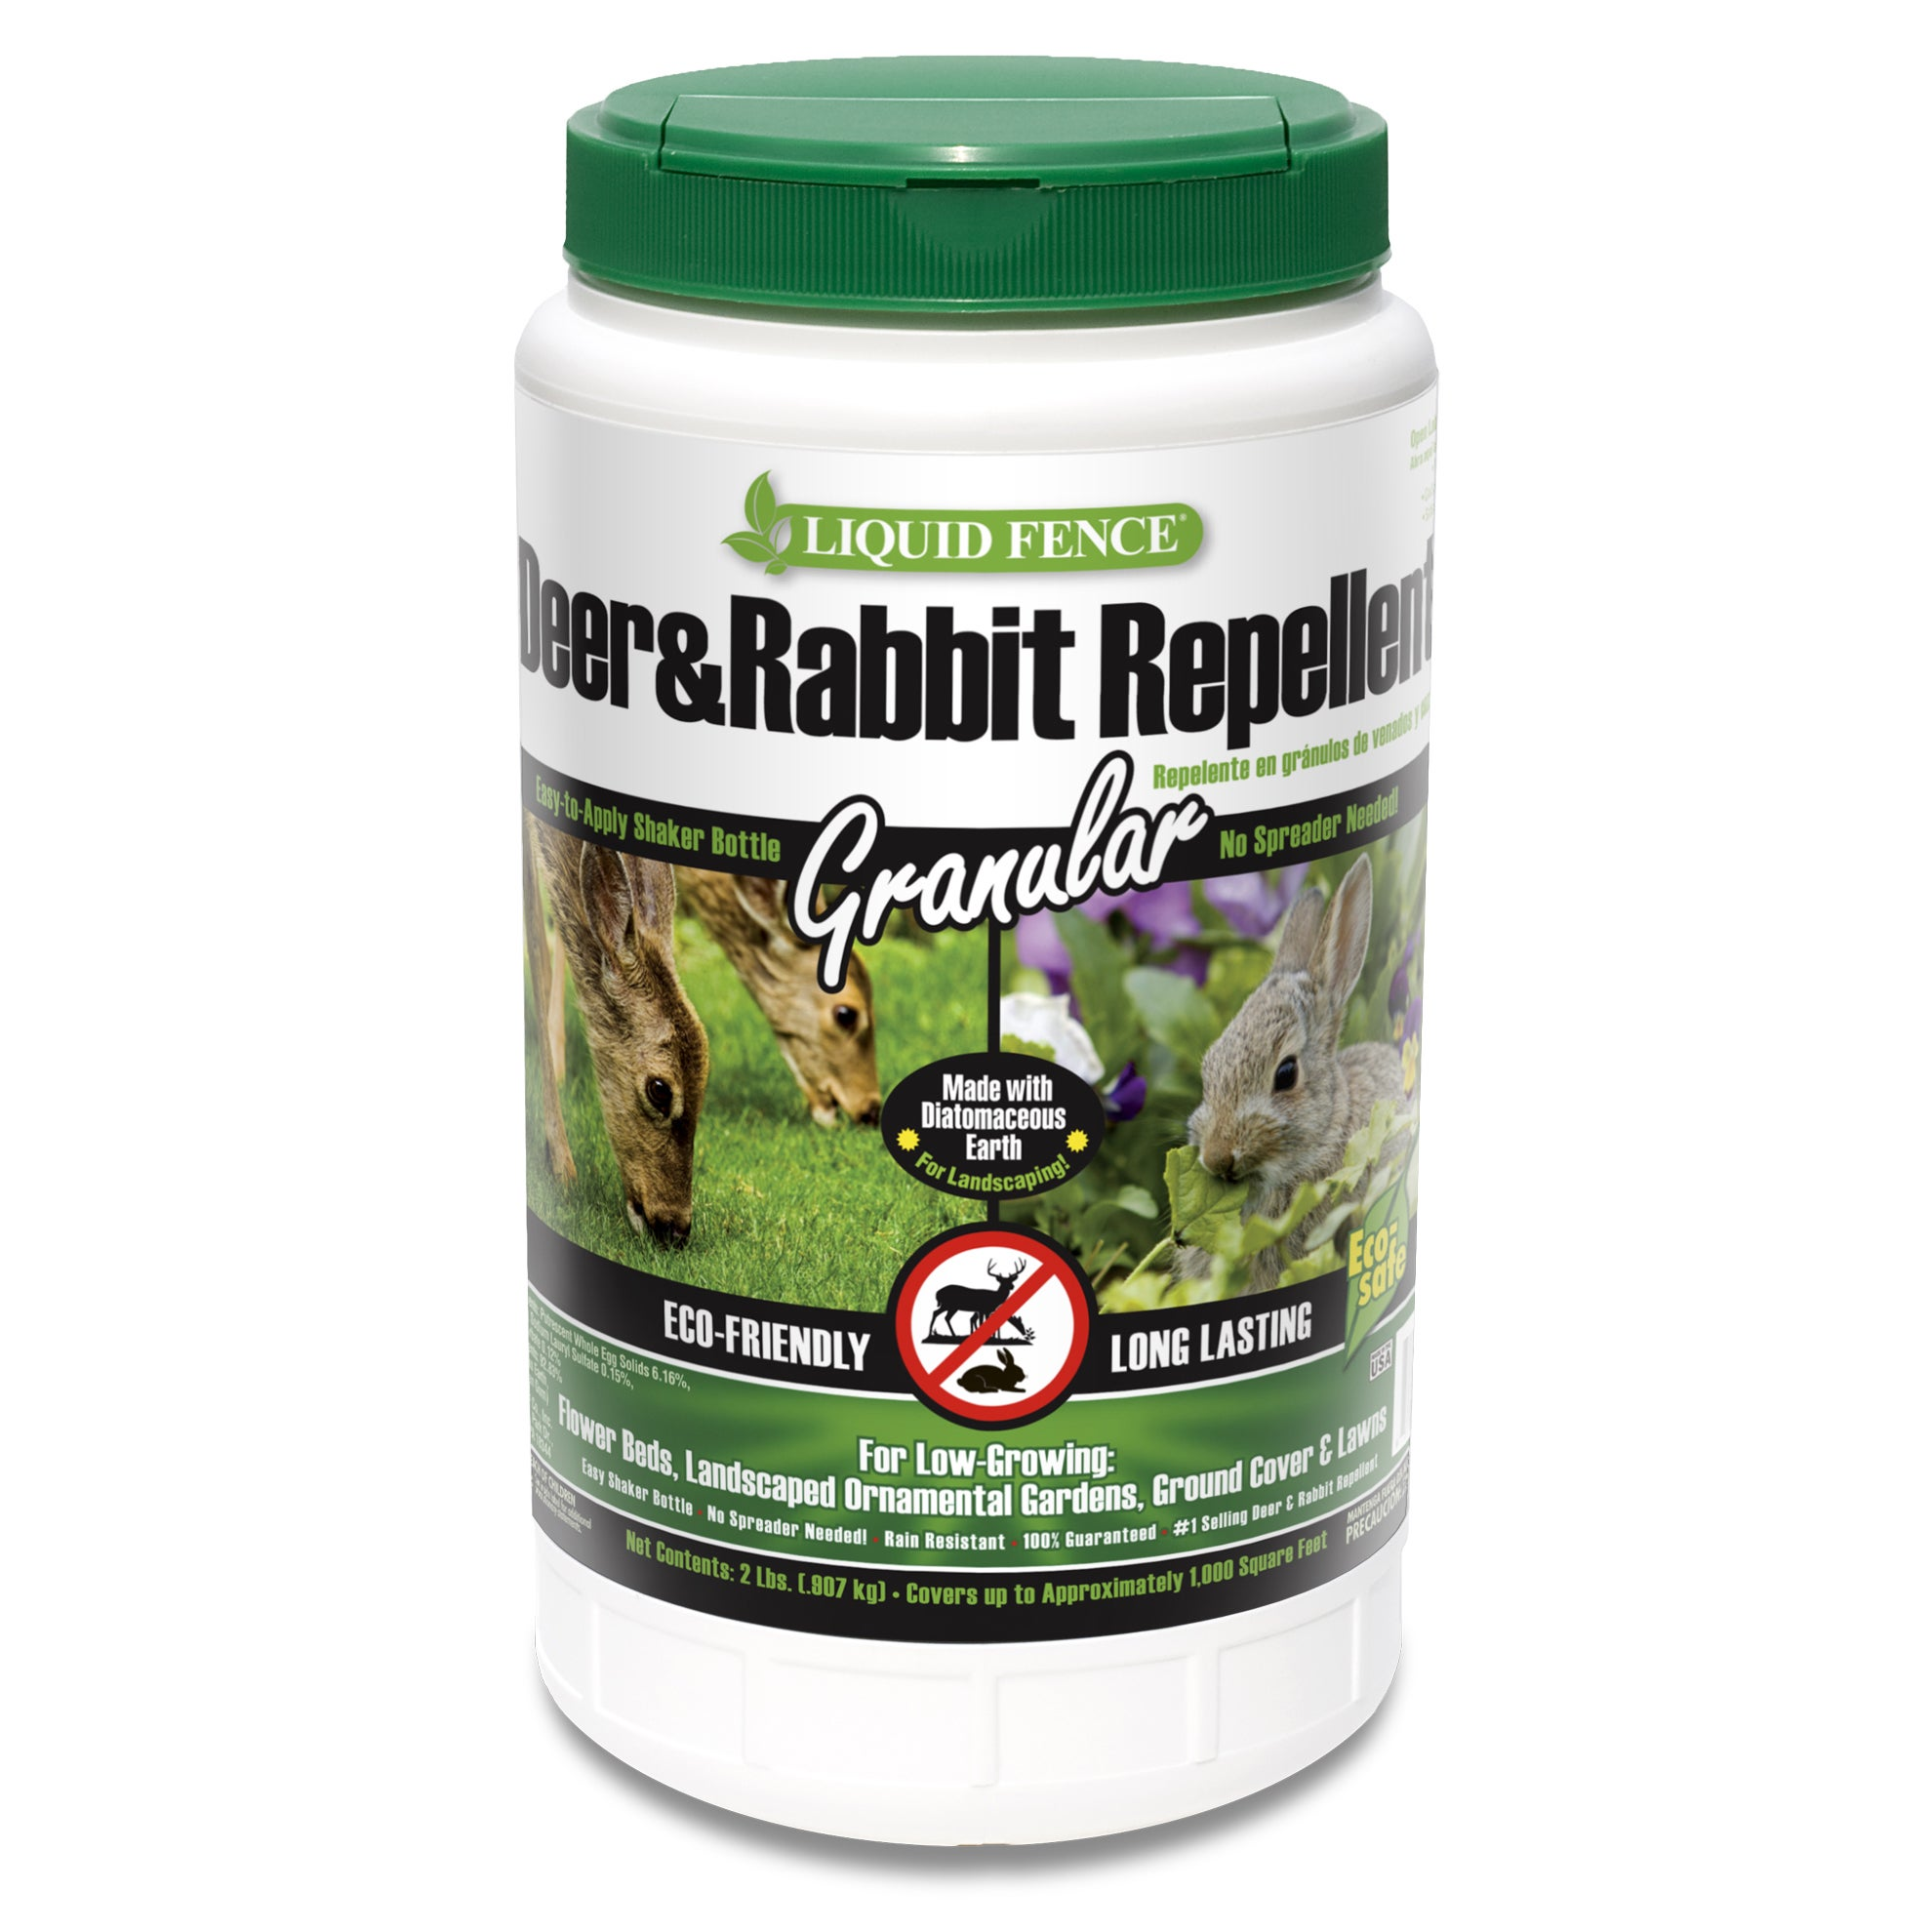 Spectrum Liquid Fence 70266 2-pound Deer & Rabbit Repelle...